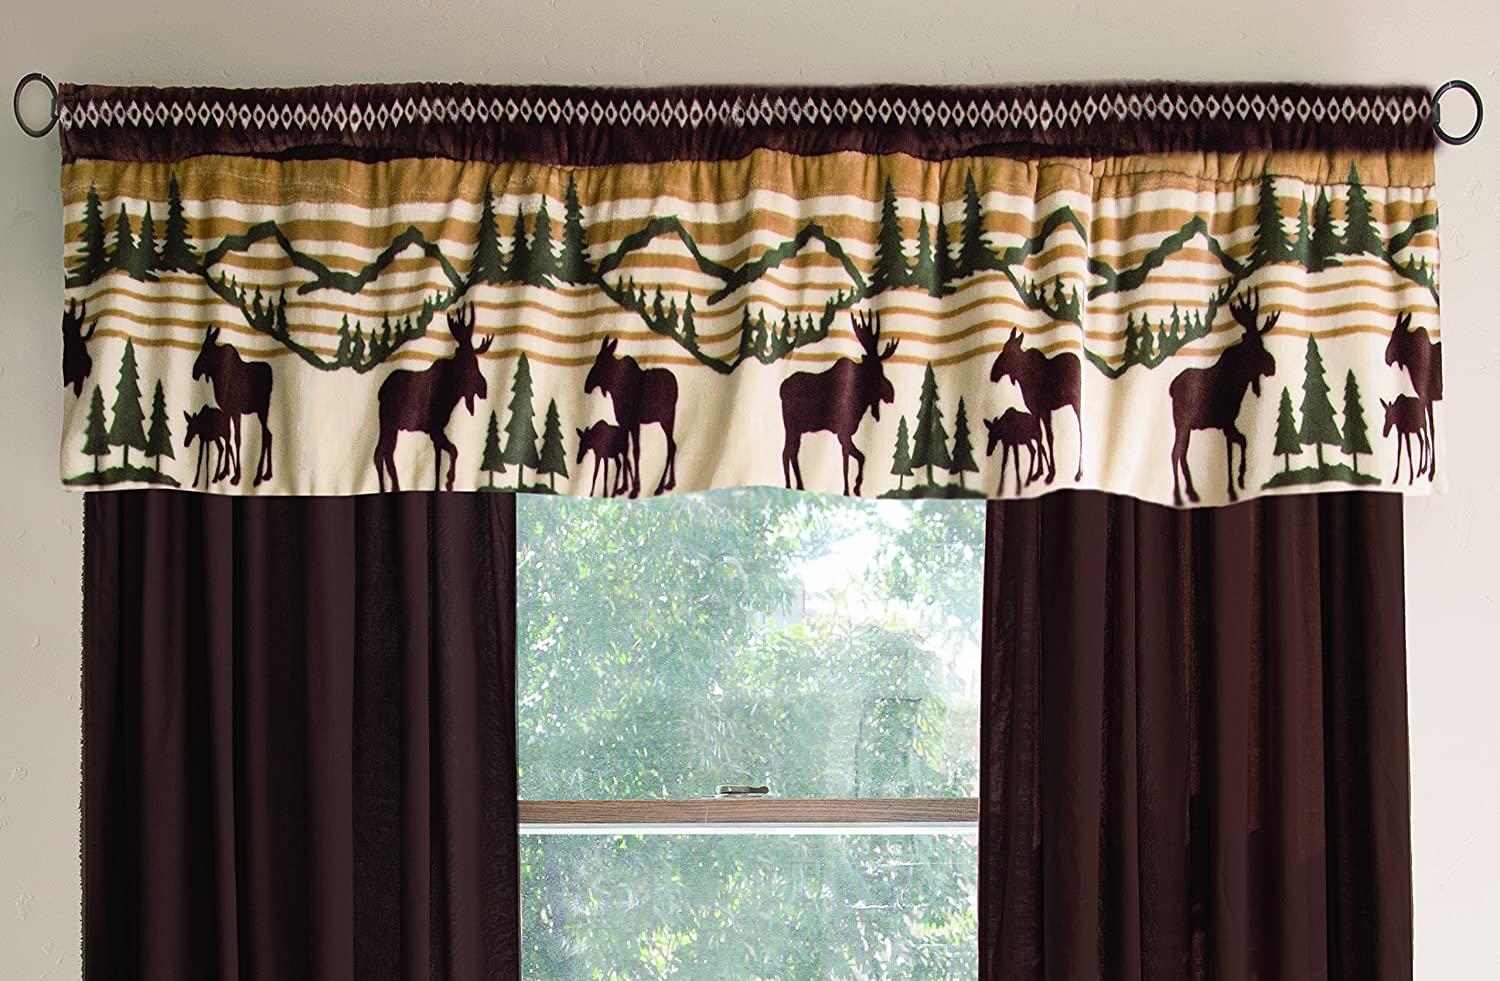 Carstens Hinterland Valance Window Treatment